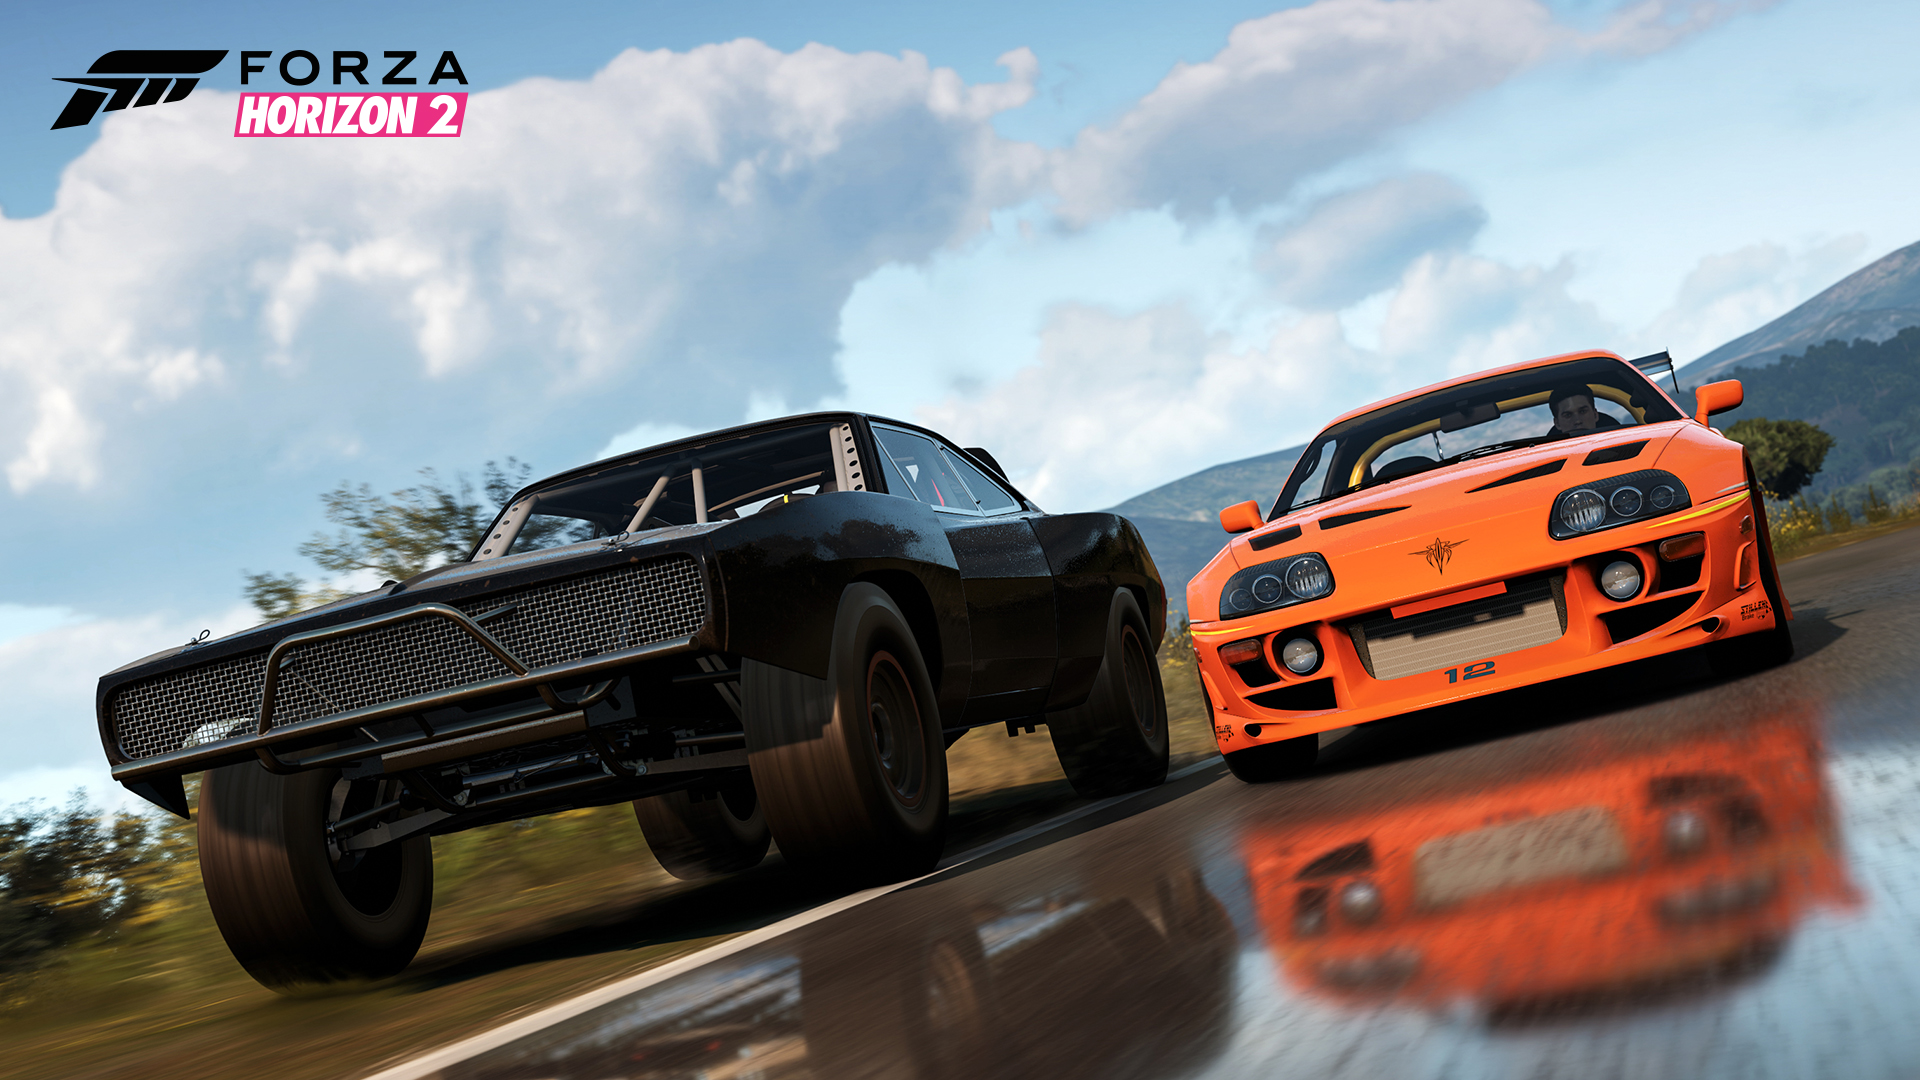 Fast Furious Car Pack Icon Infobox Game Forza Horizon 2